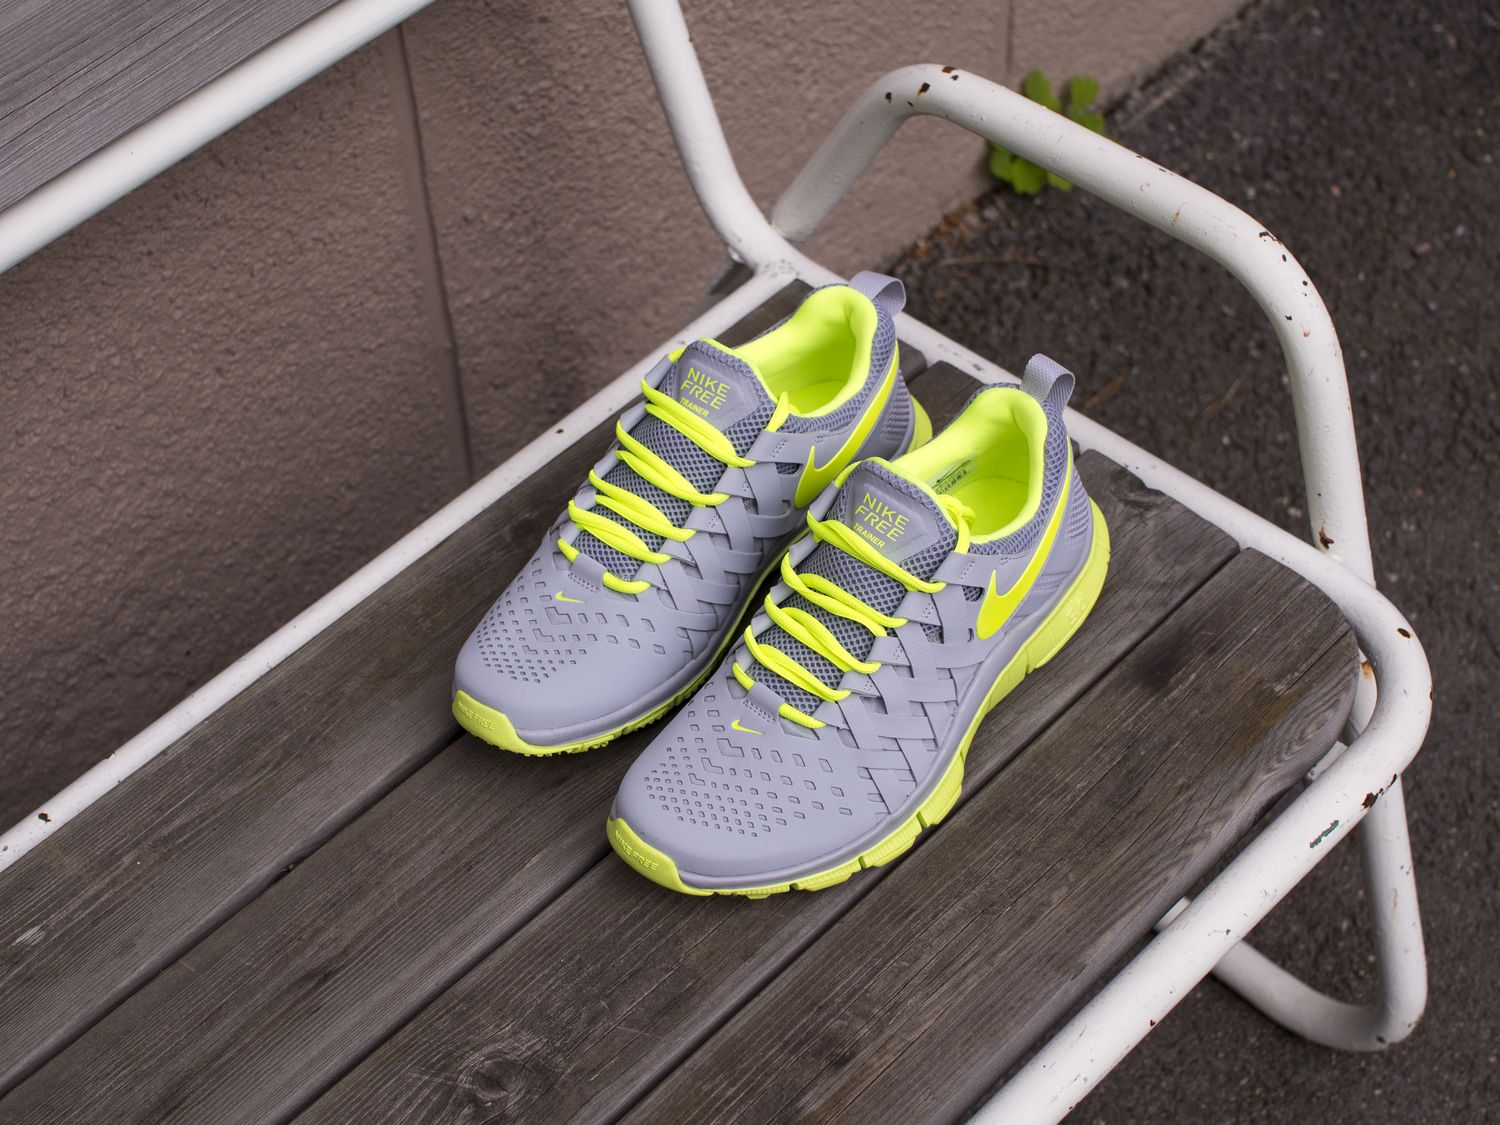 1a91a09c1c1 Nike Free Trainer 5.0 - Sizing and Review